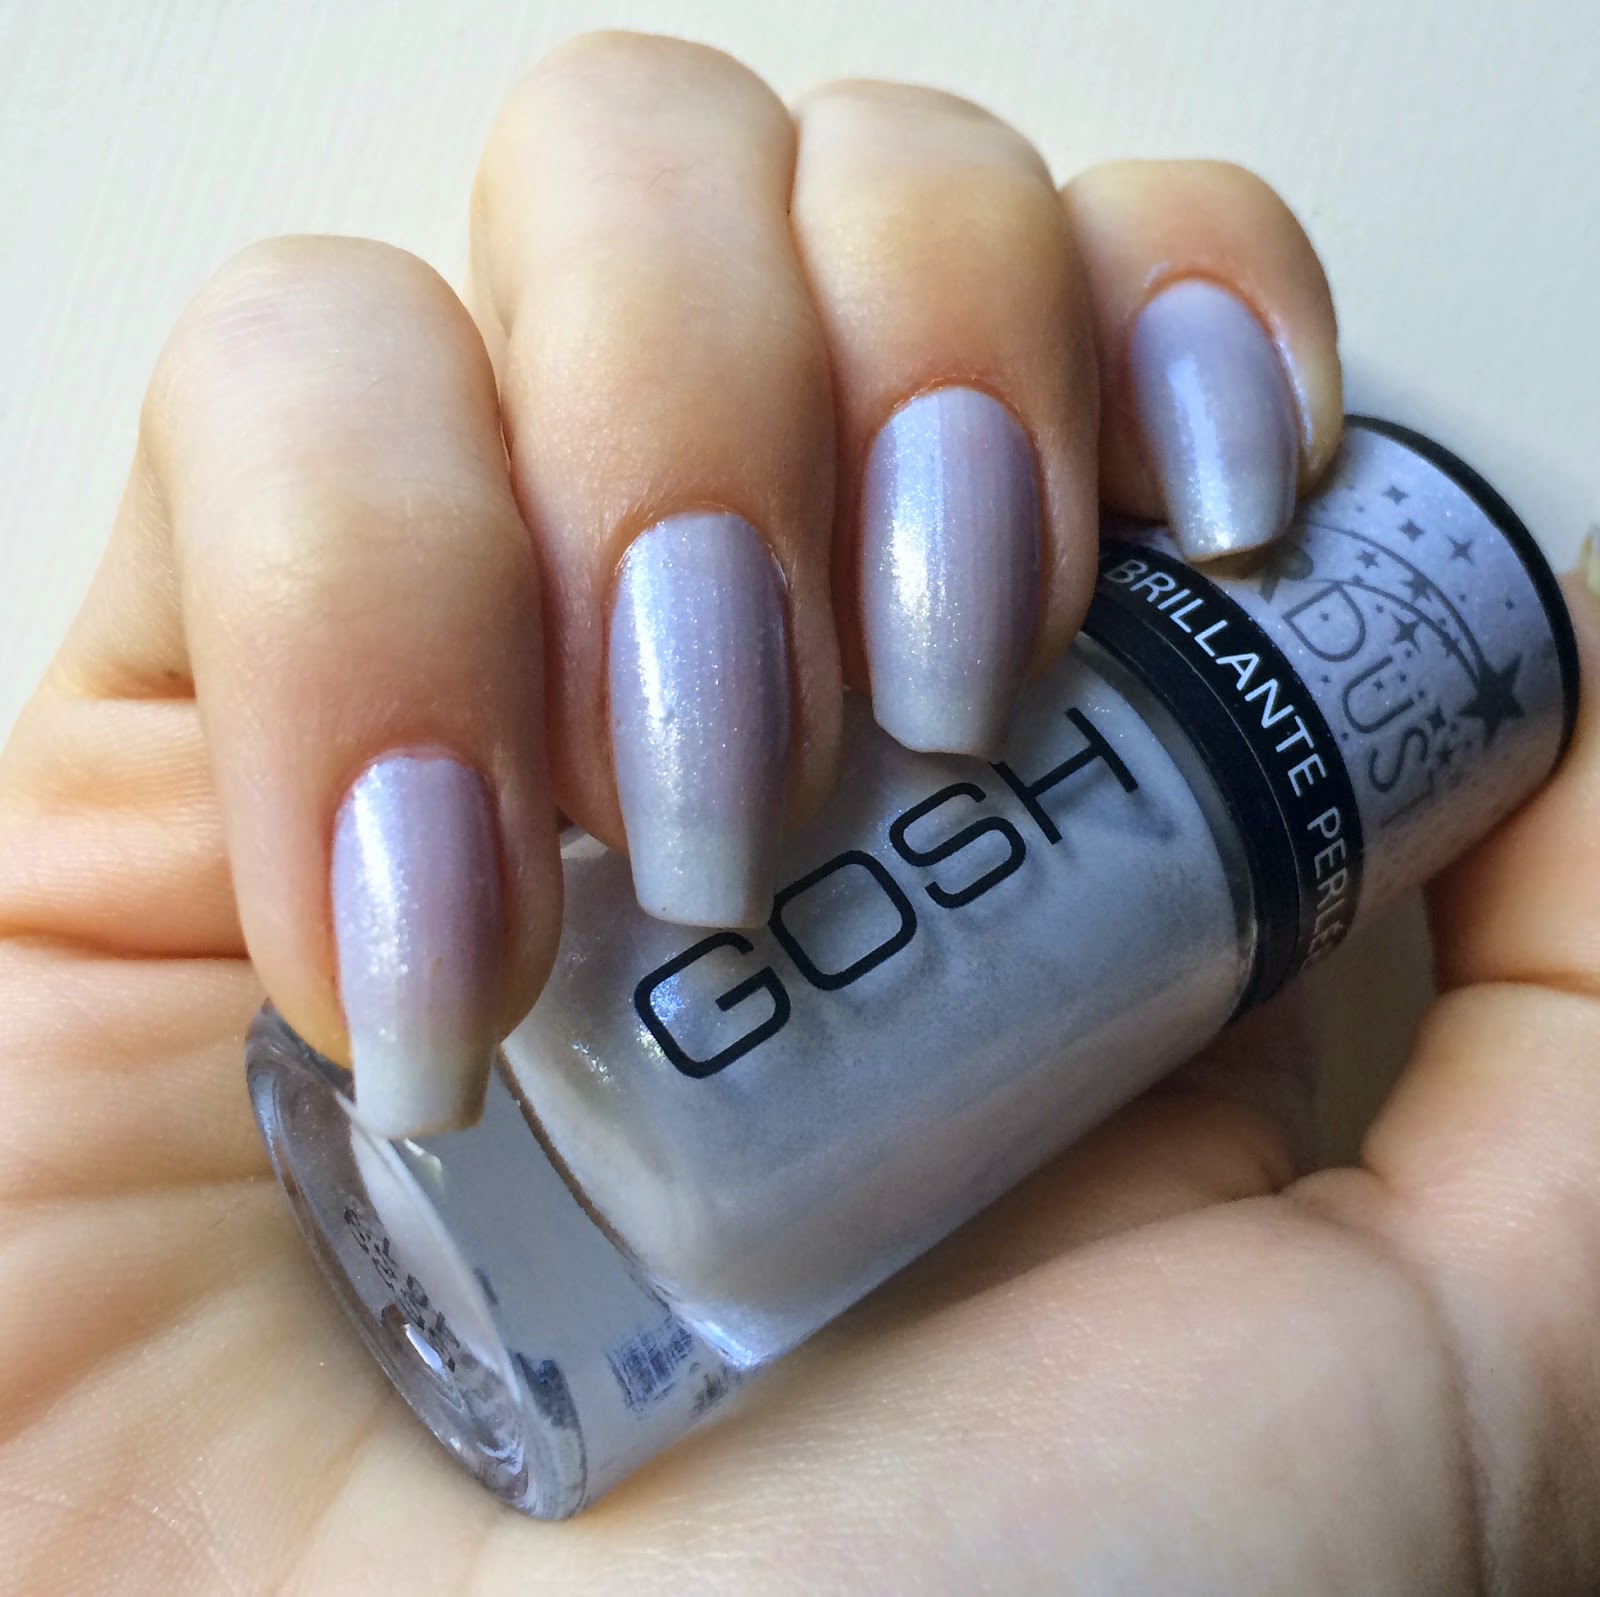 gosh-stardust-nail-lacquer-collection-2014-milky-way